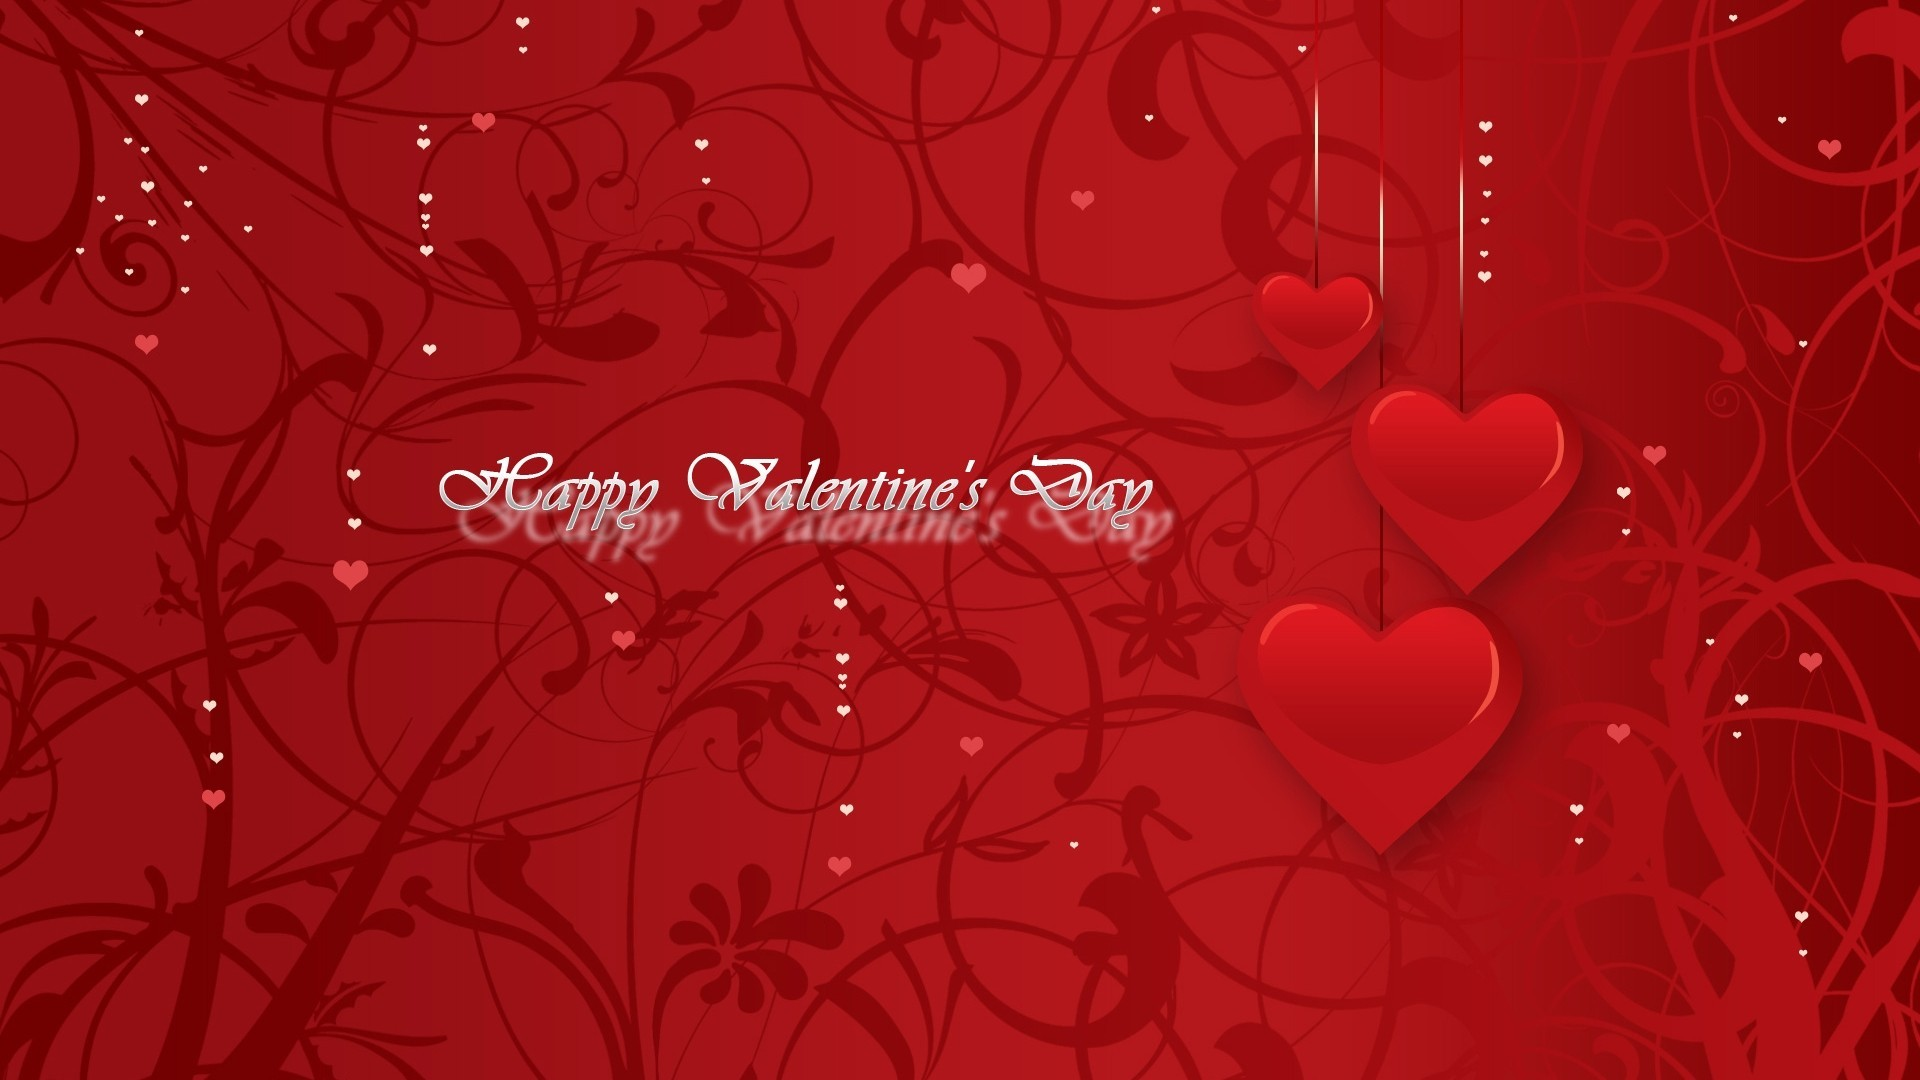 1920x1080 Happy Valentines Day Images HD Wallpaper